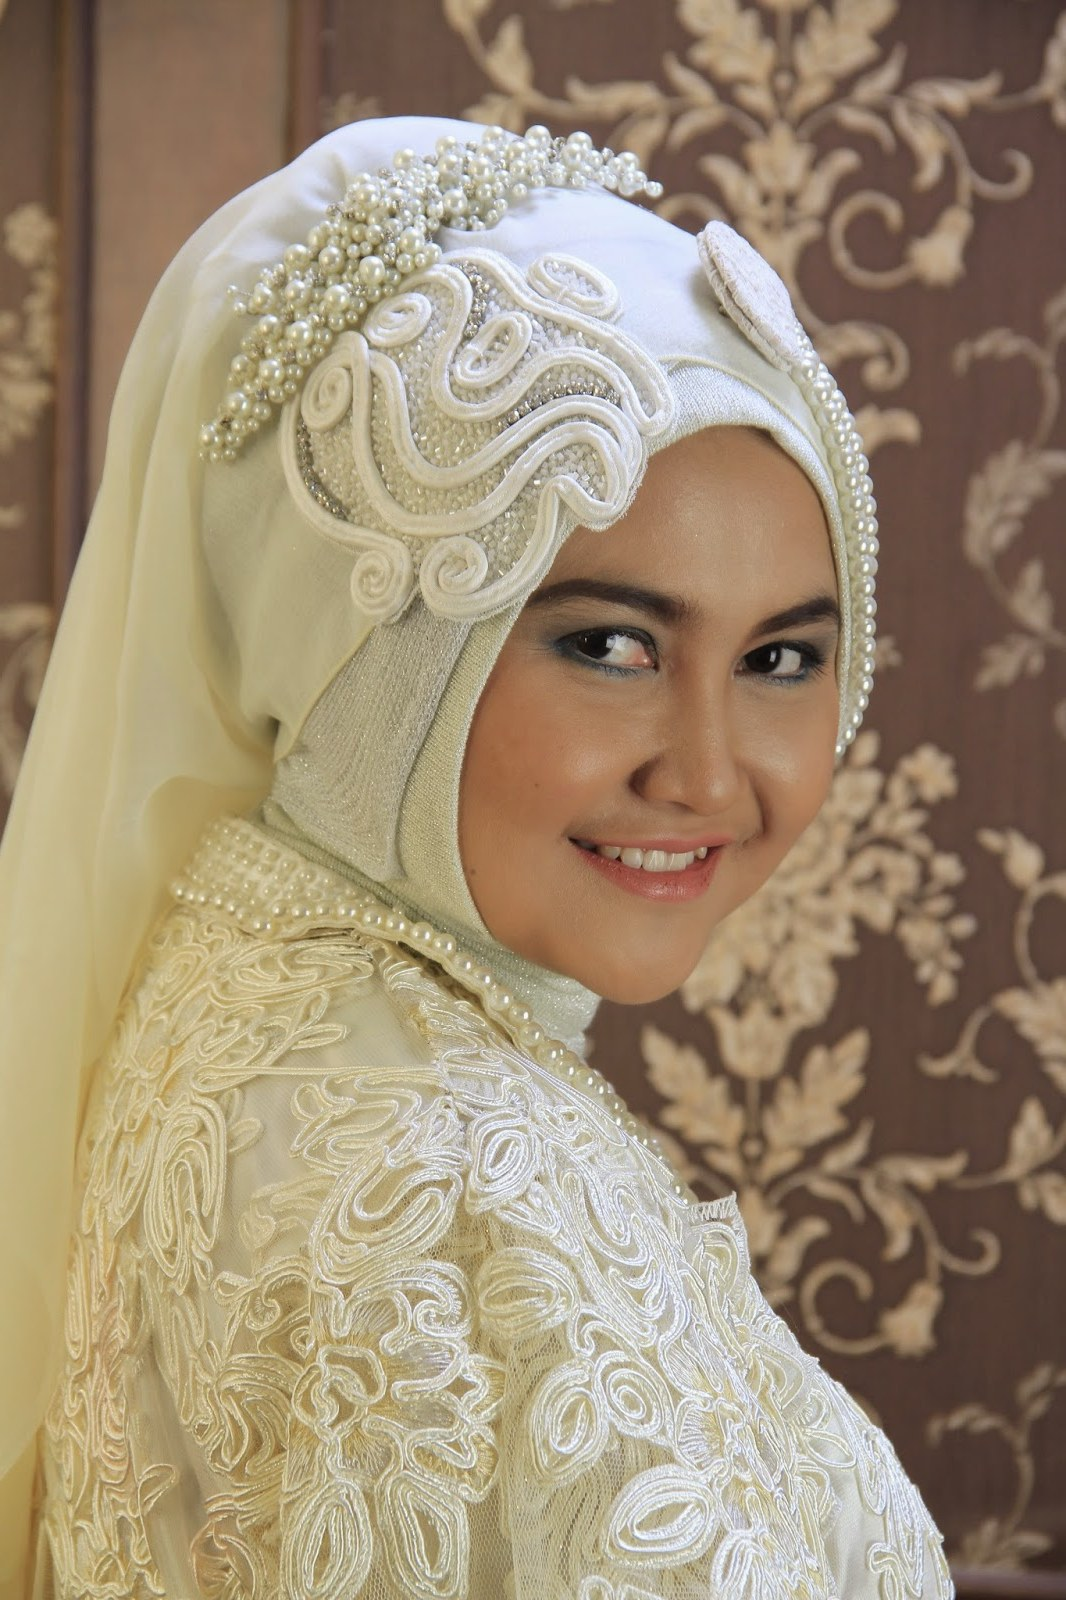 Design Gaun Pengantin 2016 Muslim E9dx Padme Wedding Dress Confessions Of A Seamstress the